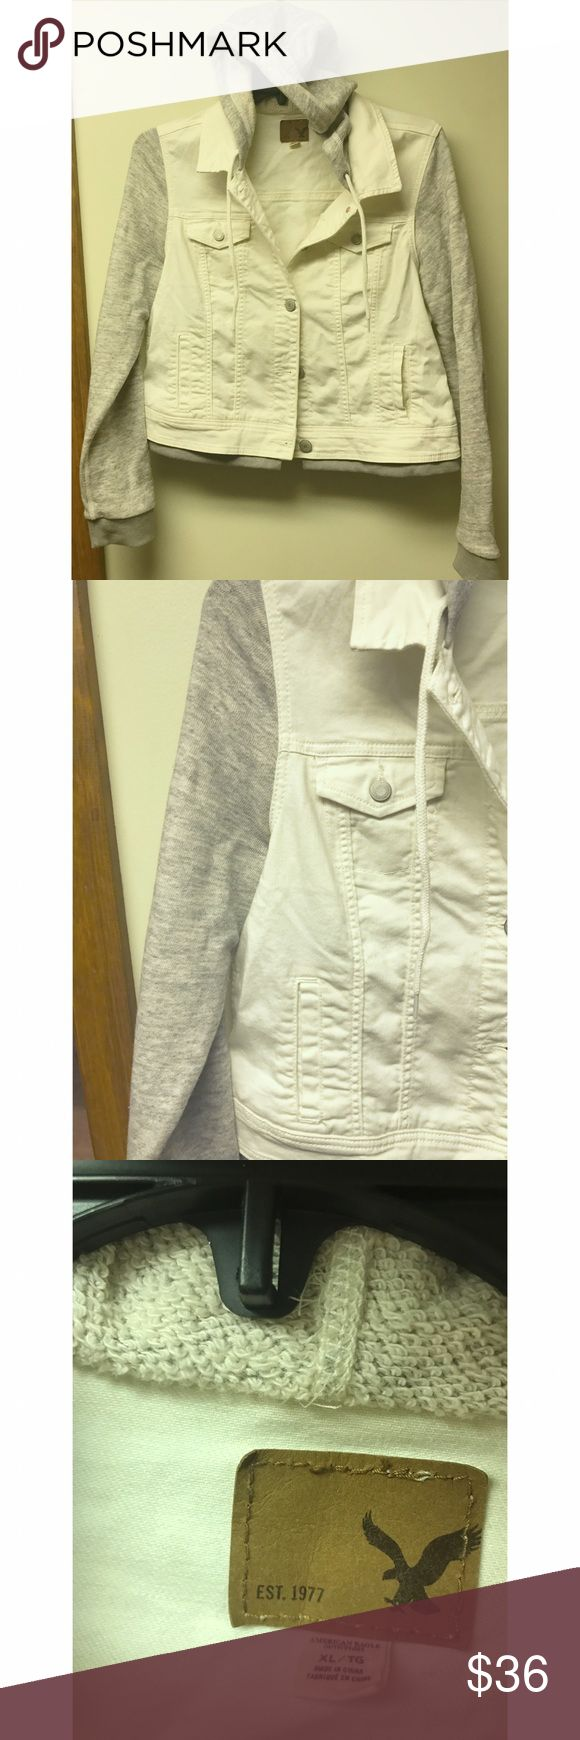 NWOT AMERICAN EAGLE JEAN JACKET. Only tried on, never worn, super adorable American eagle Jean and cloth jacket American Eagle Outfitters Jackets & Coats Jean Jackets